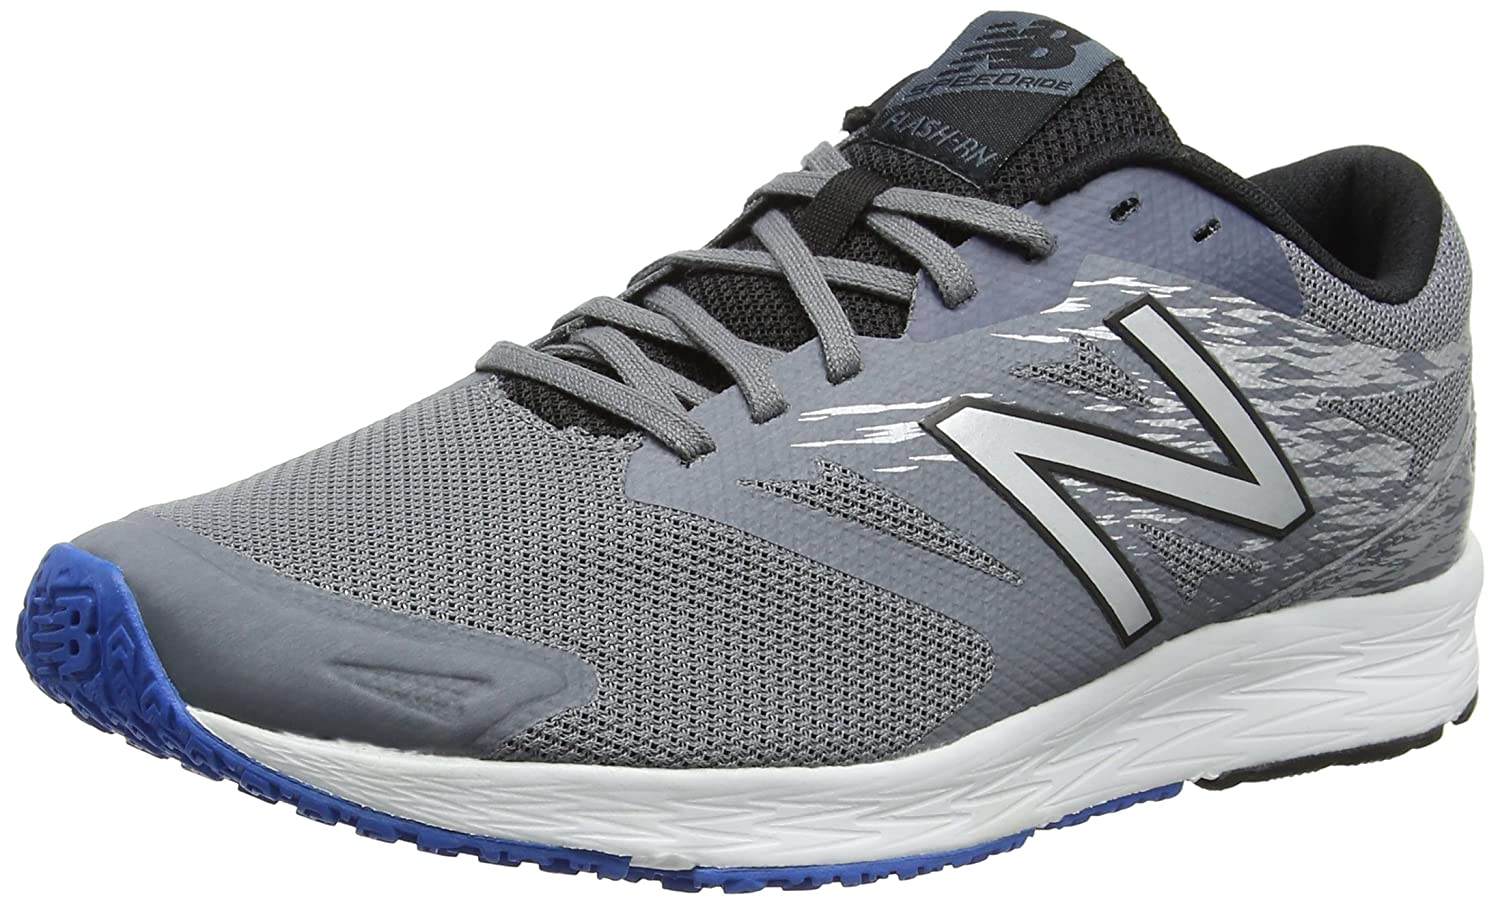 New Balance Herren Flash Run V1 Hallenschuhe